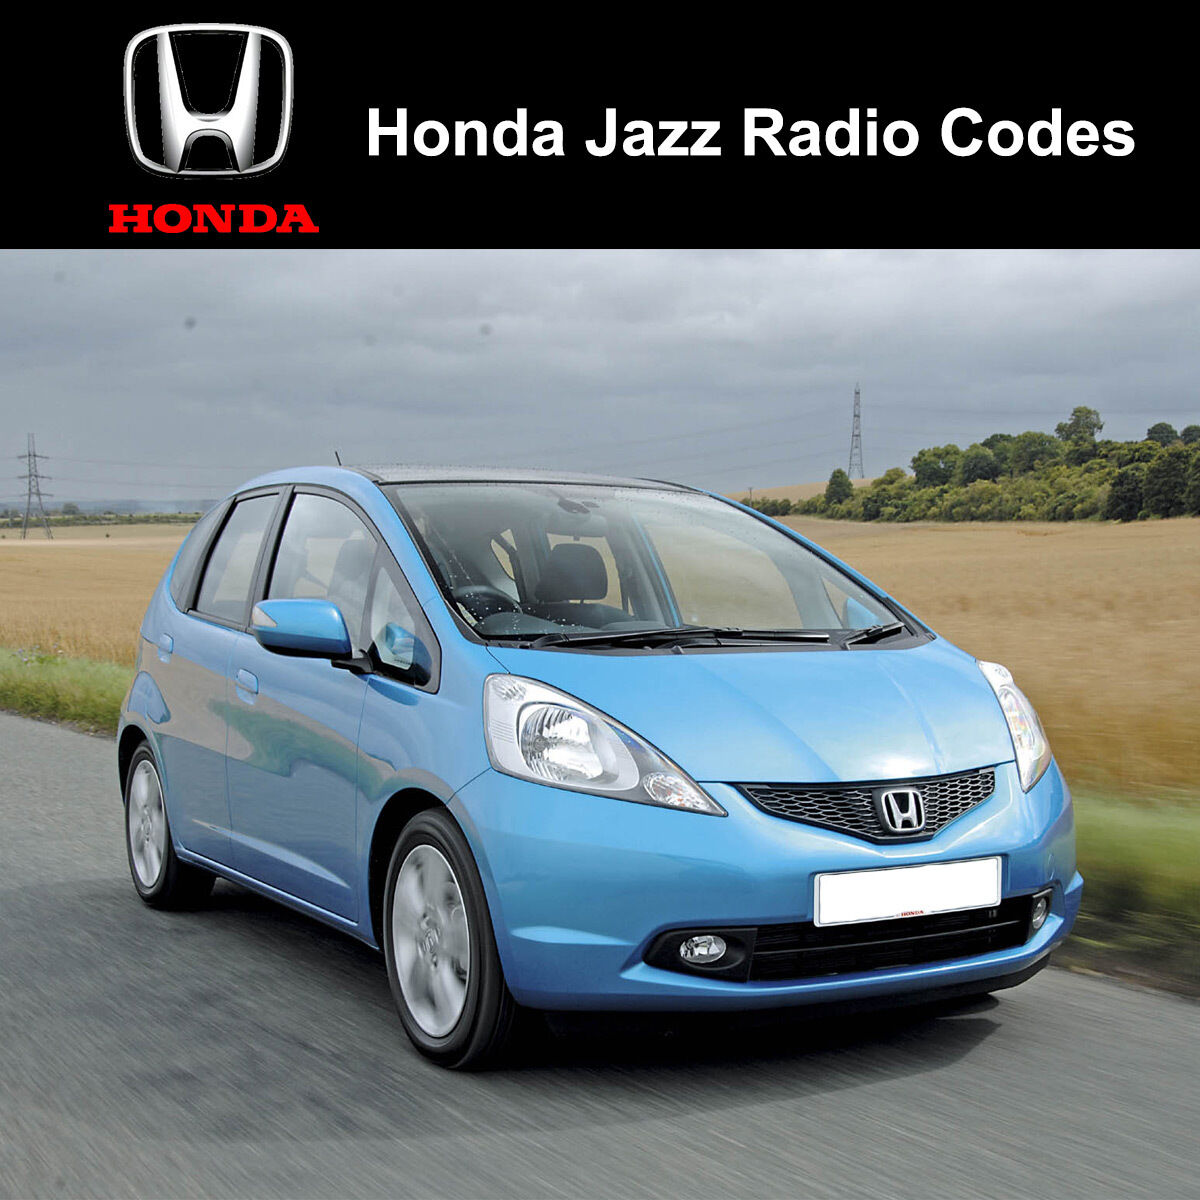 Beautiful Honda Radio Codes Civic Crv Jazz Accord Insight Unlock Car Decode Code Uk